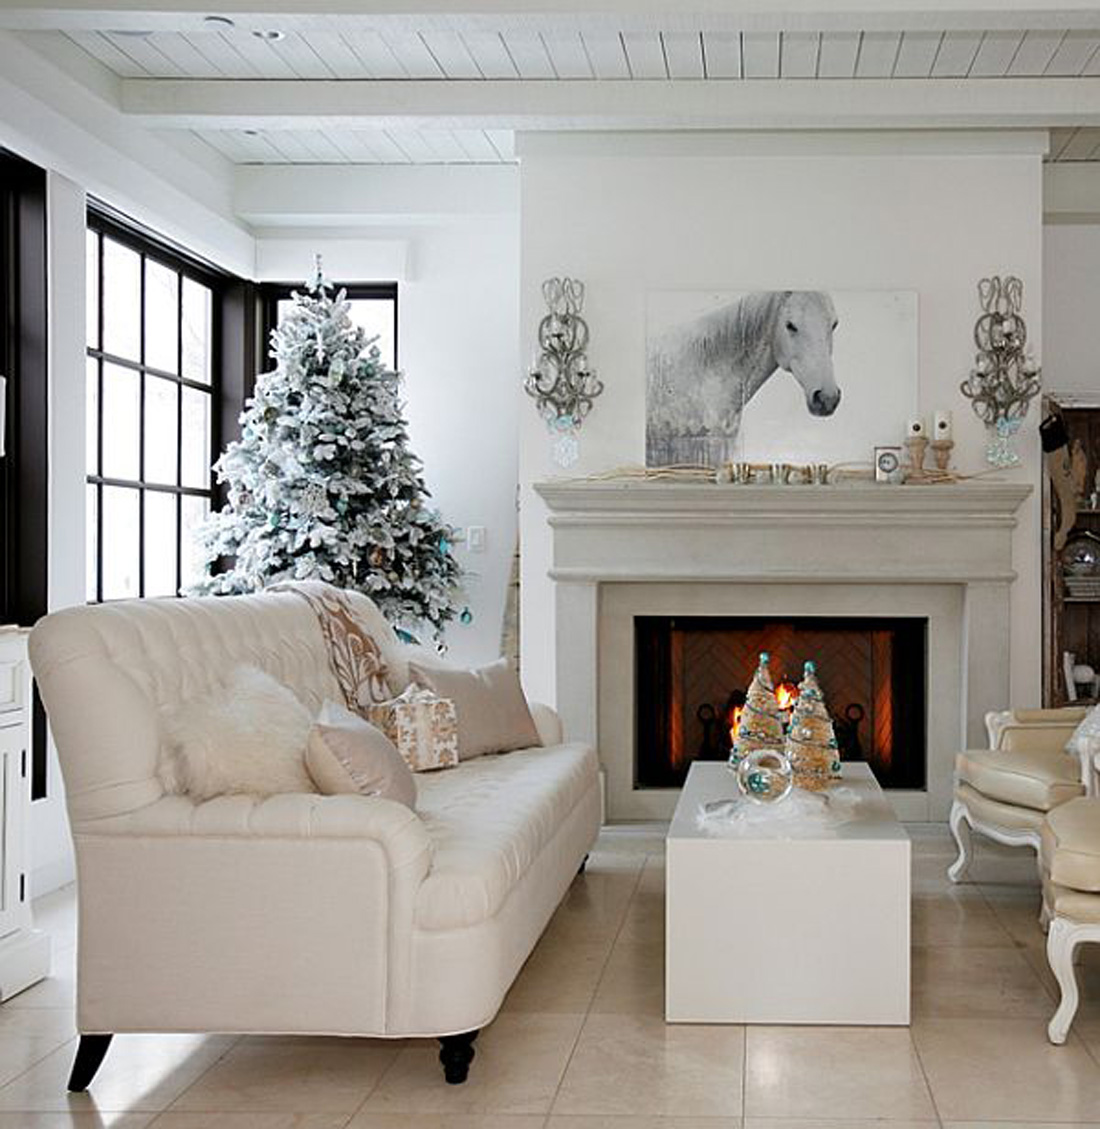 Magical Christmas living room ideas : 3 Snow Laden Branches Decoration from www.faburous.com size 1100 x 1129 jpeg 280kB